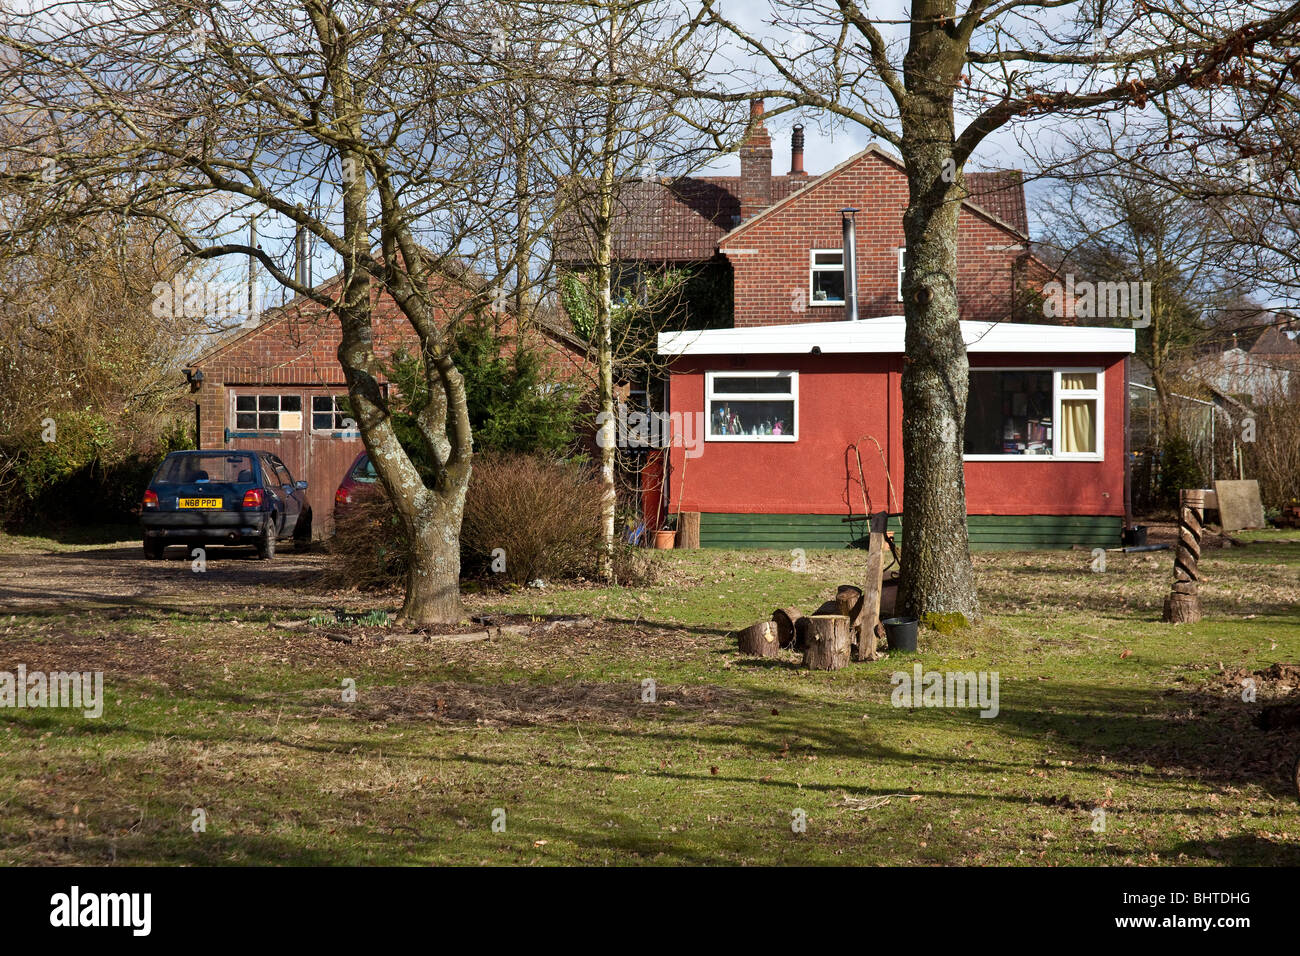 Country cottage with a mobile home in the garden, Hampshire, England. - Stock Image